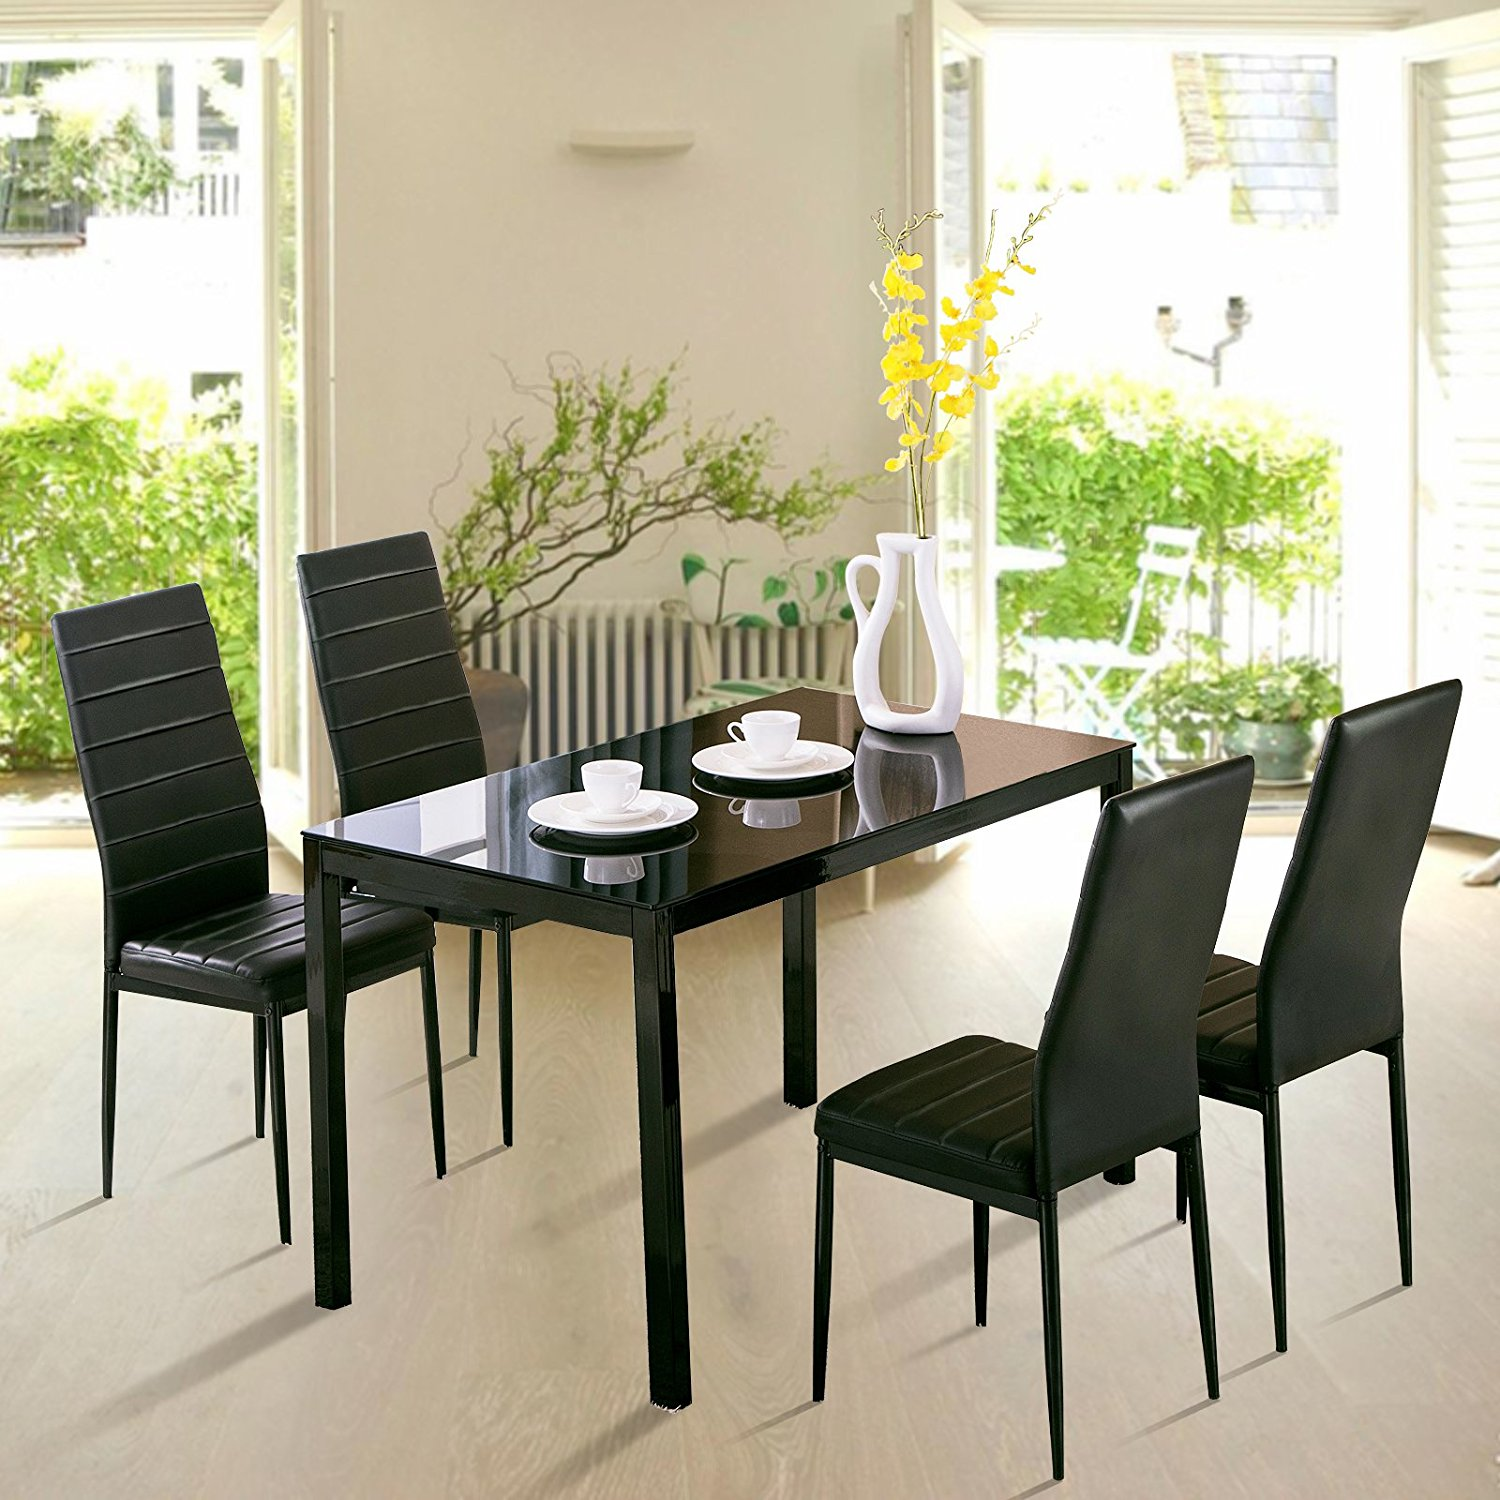 Dining Table Sets Under 200: Metal Dining Table Set & Image Is Loading Mecor-7Pcs